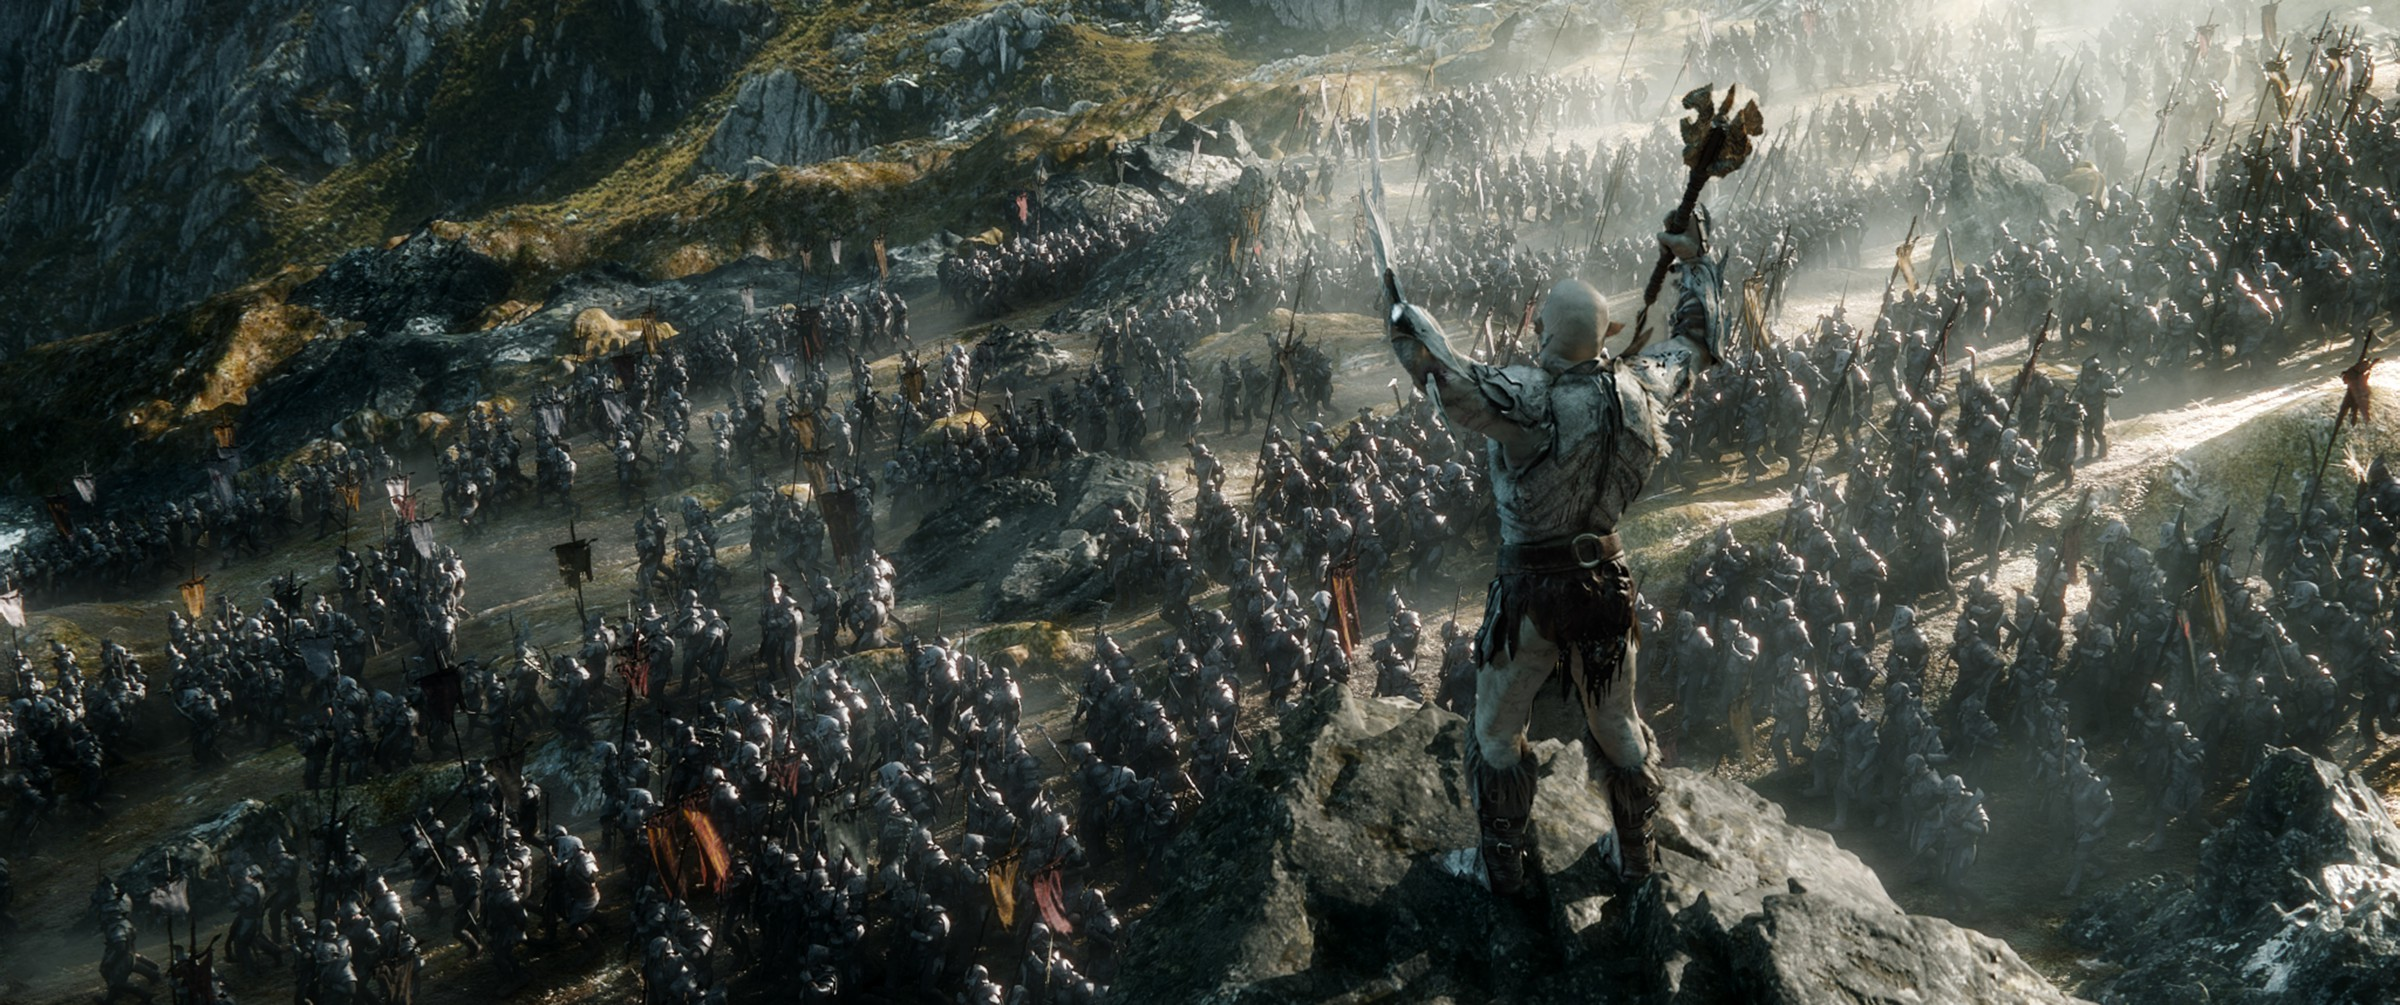 The Hobbit The Battle of the Five Armies-PHOTOS-04DEZEMBRO2014-14